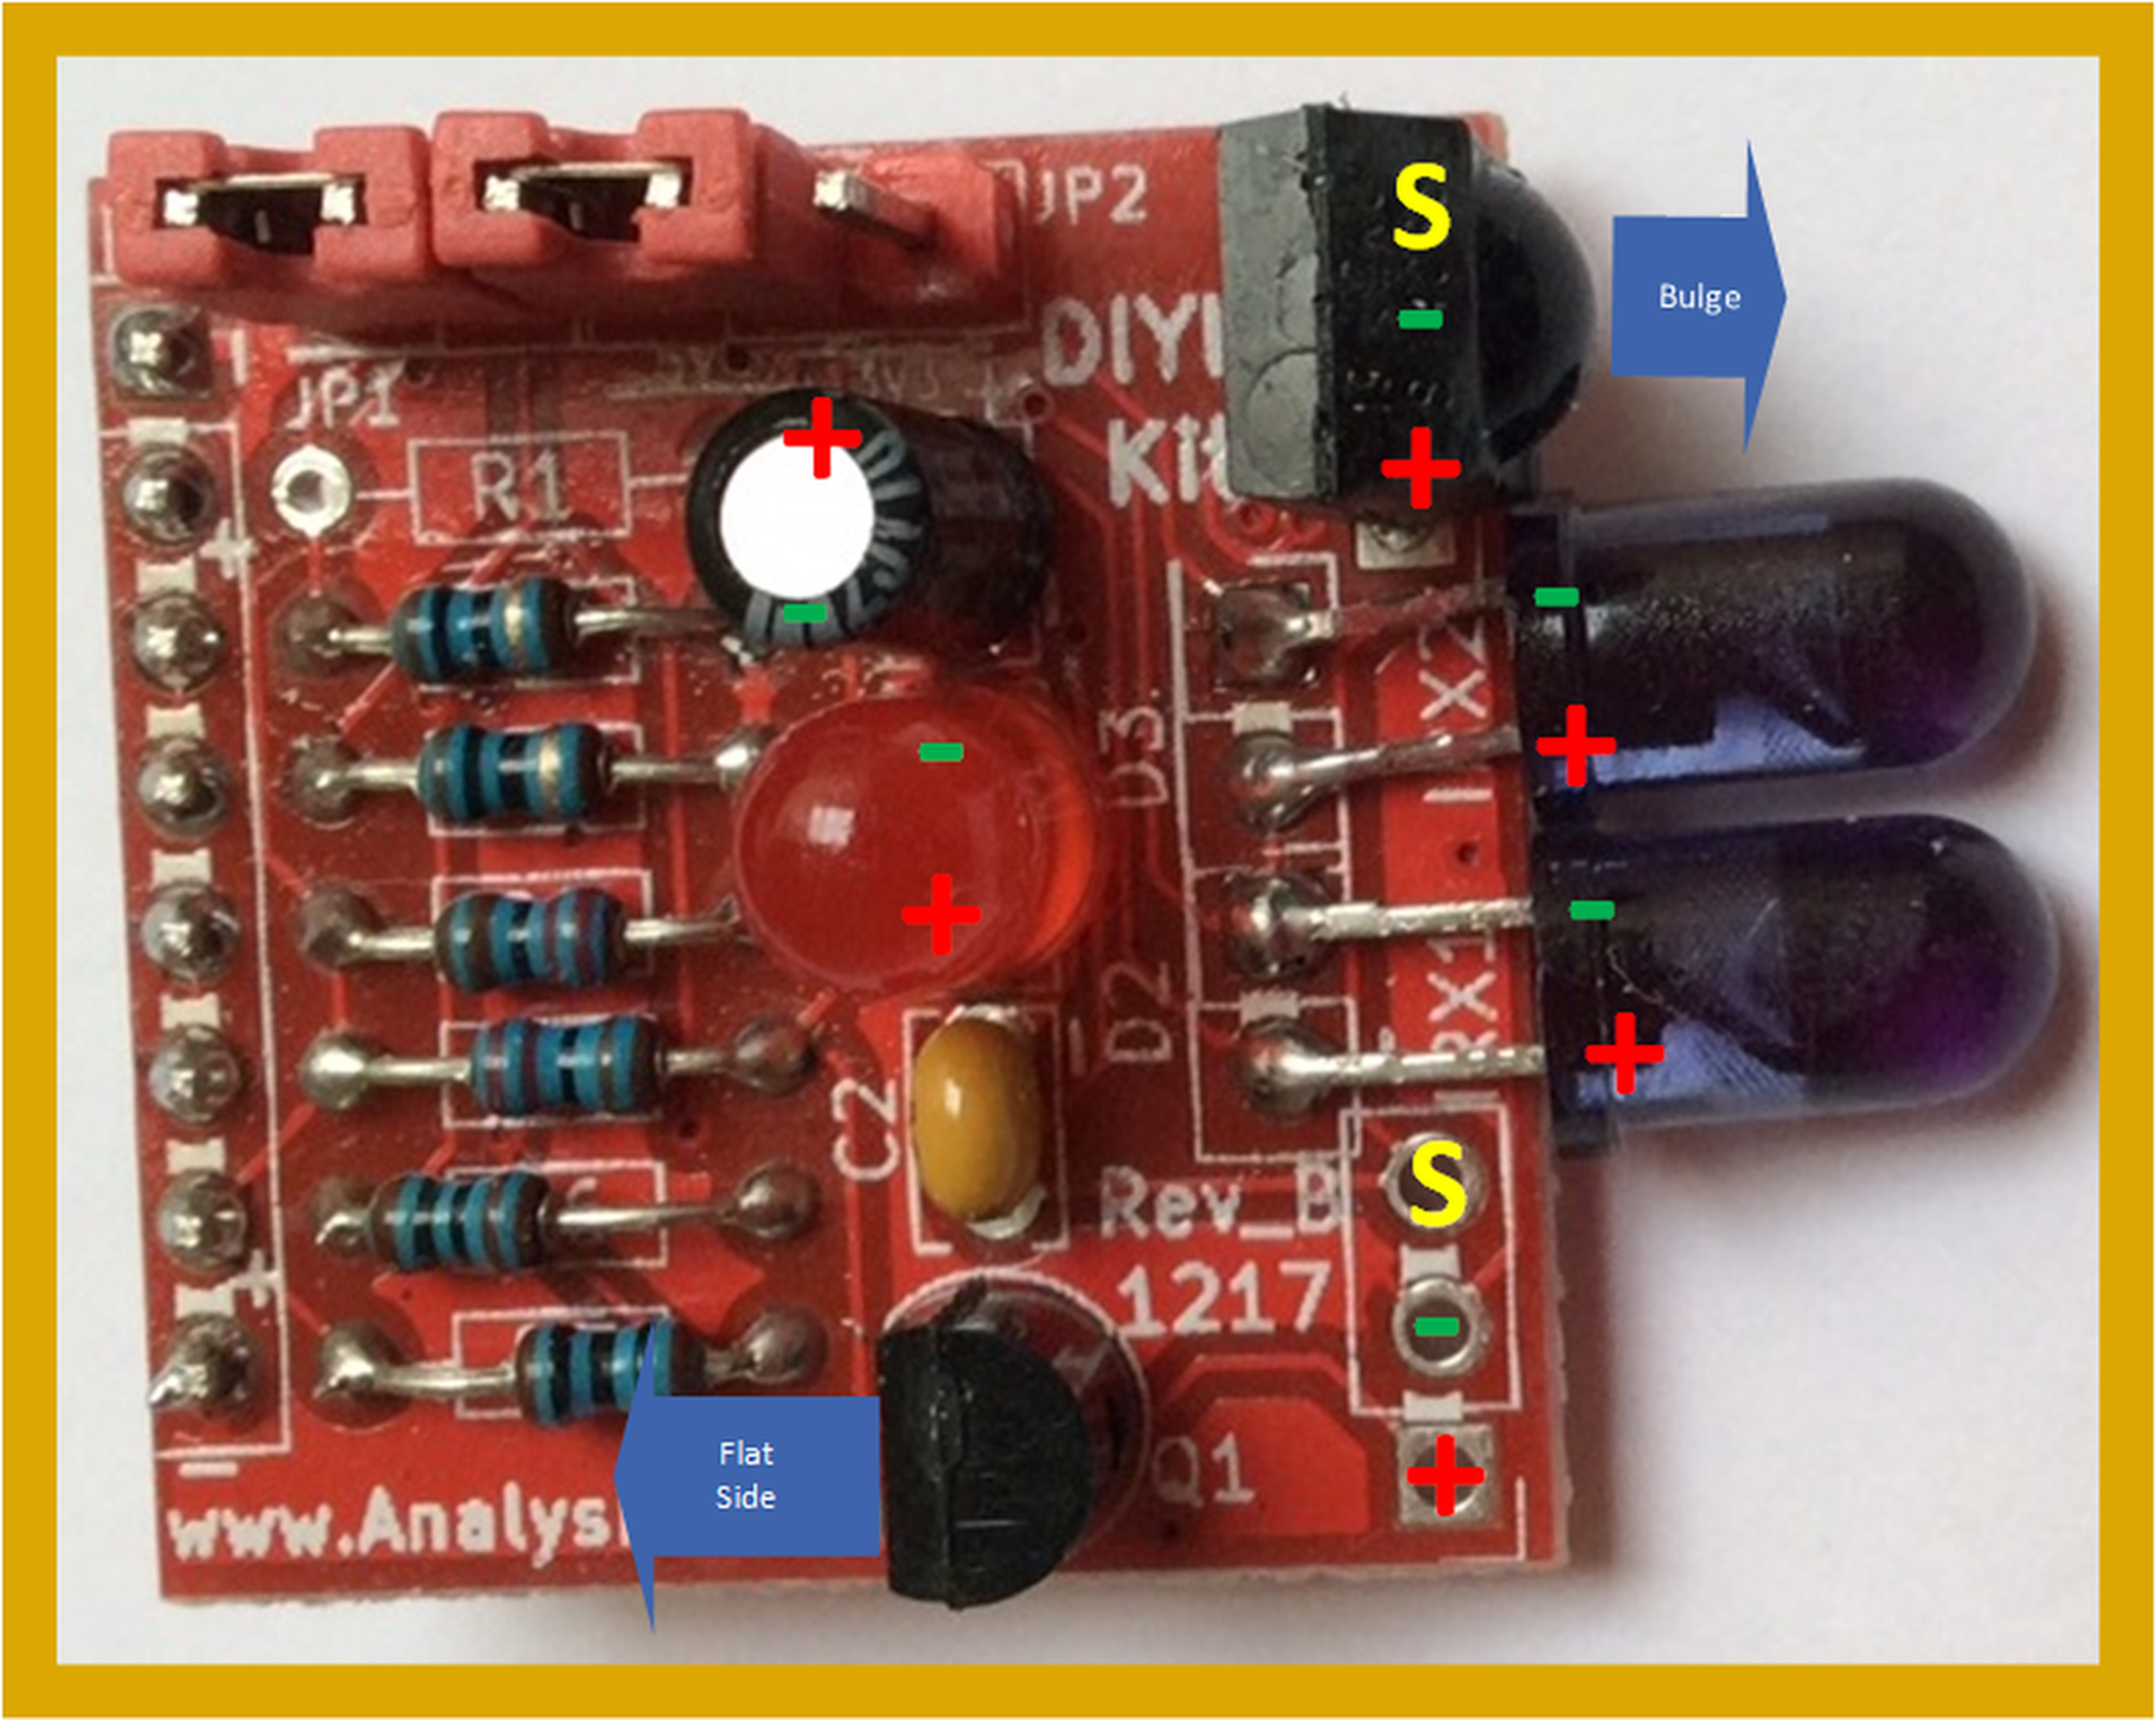 Diy Ir Soldering Kit For Infrared Remote Control From Analysir Repeater Circuit Electronic Components 6